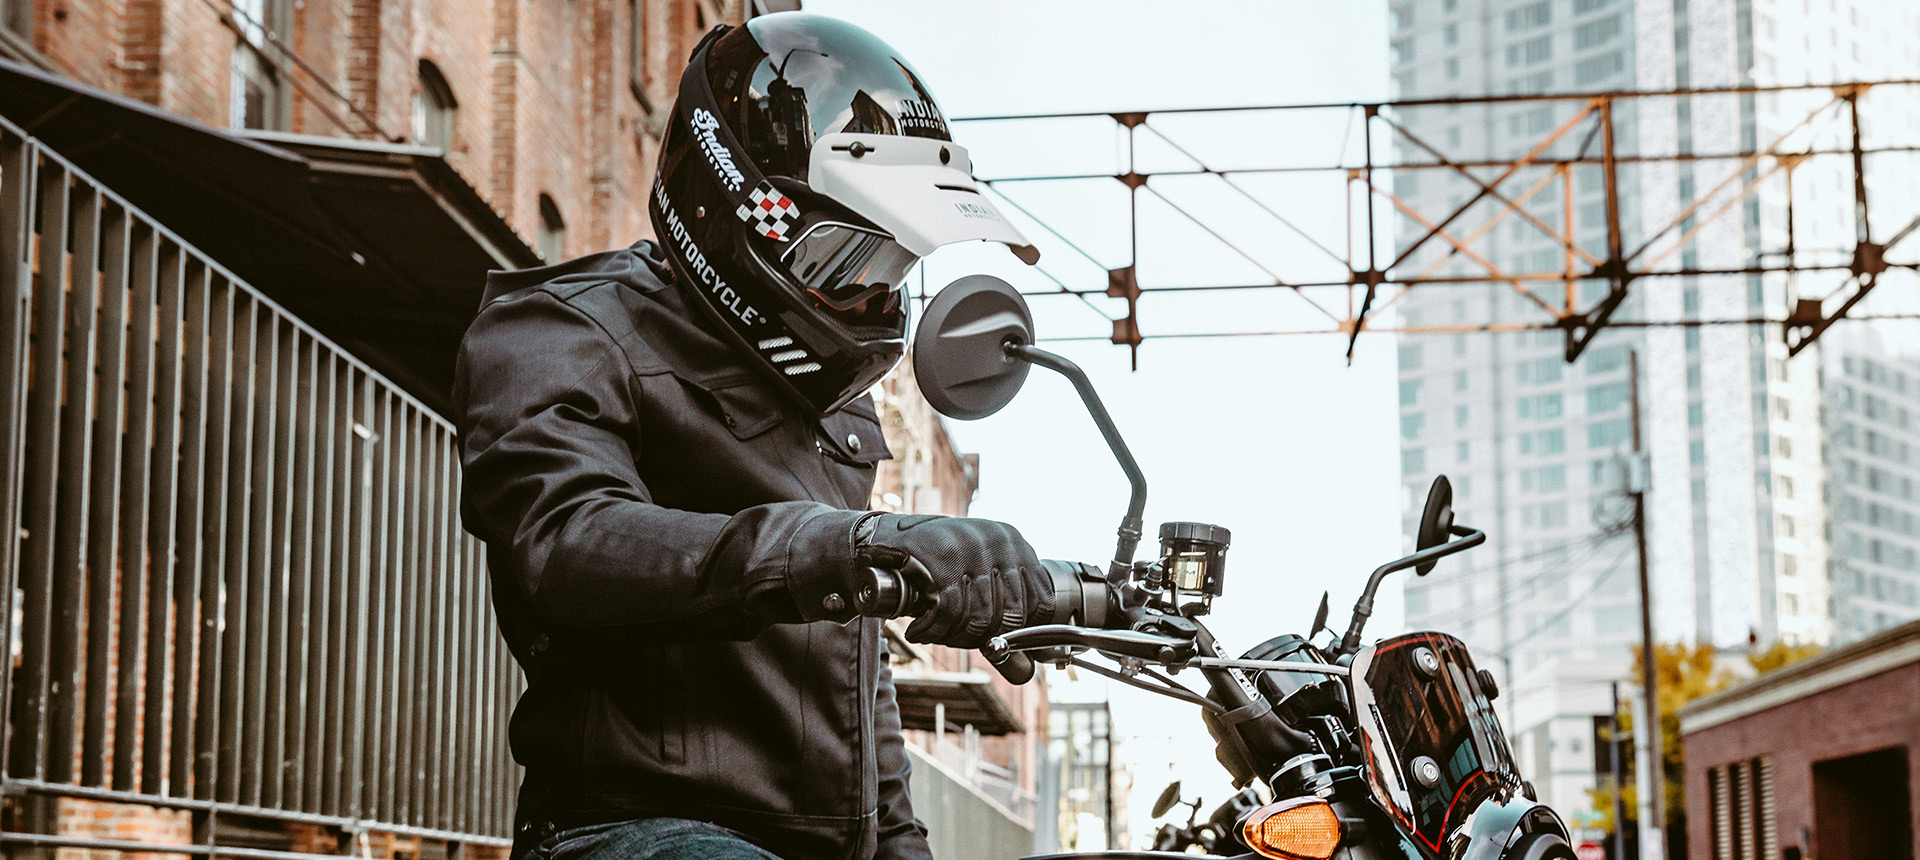 Rider on the FTR 1200 Rally motorcycle